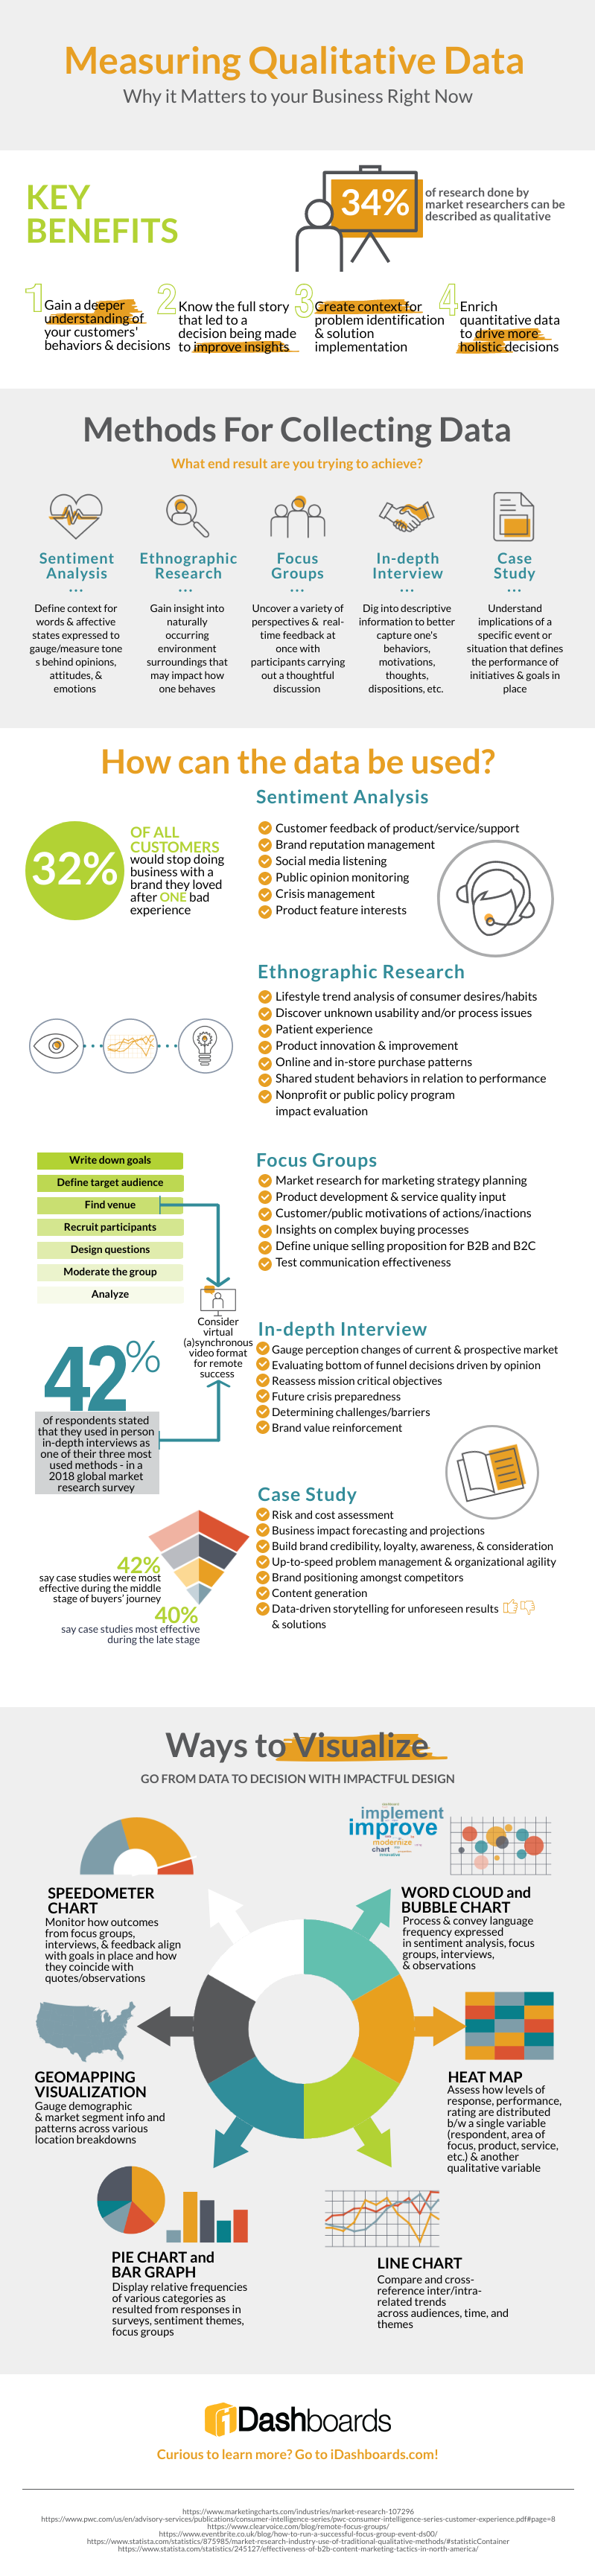 Measuring Qualitative Data #infographic